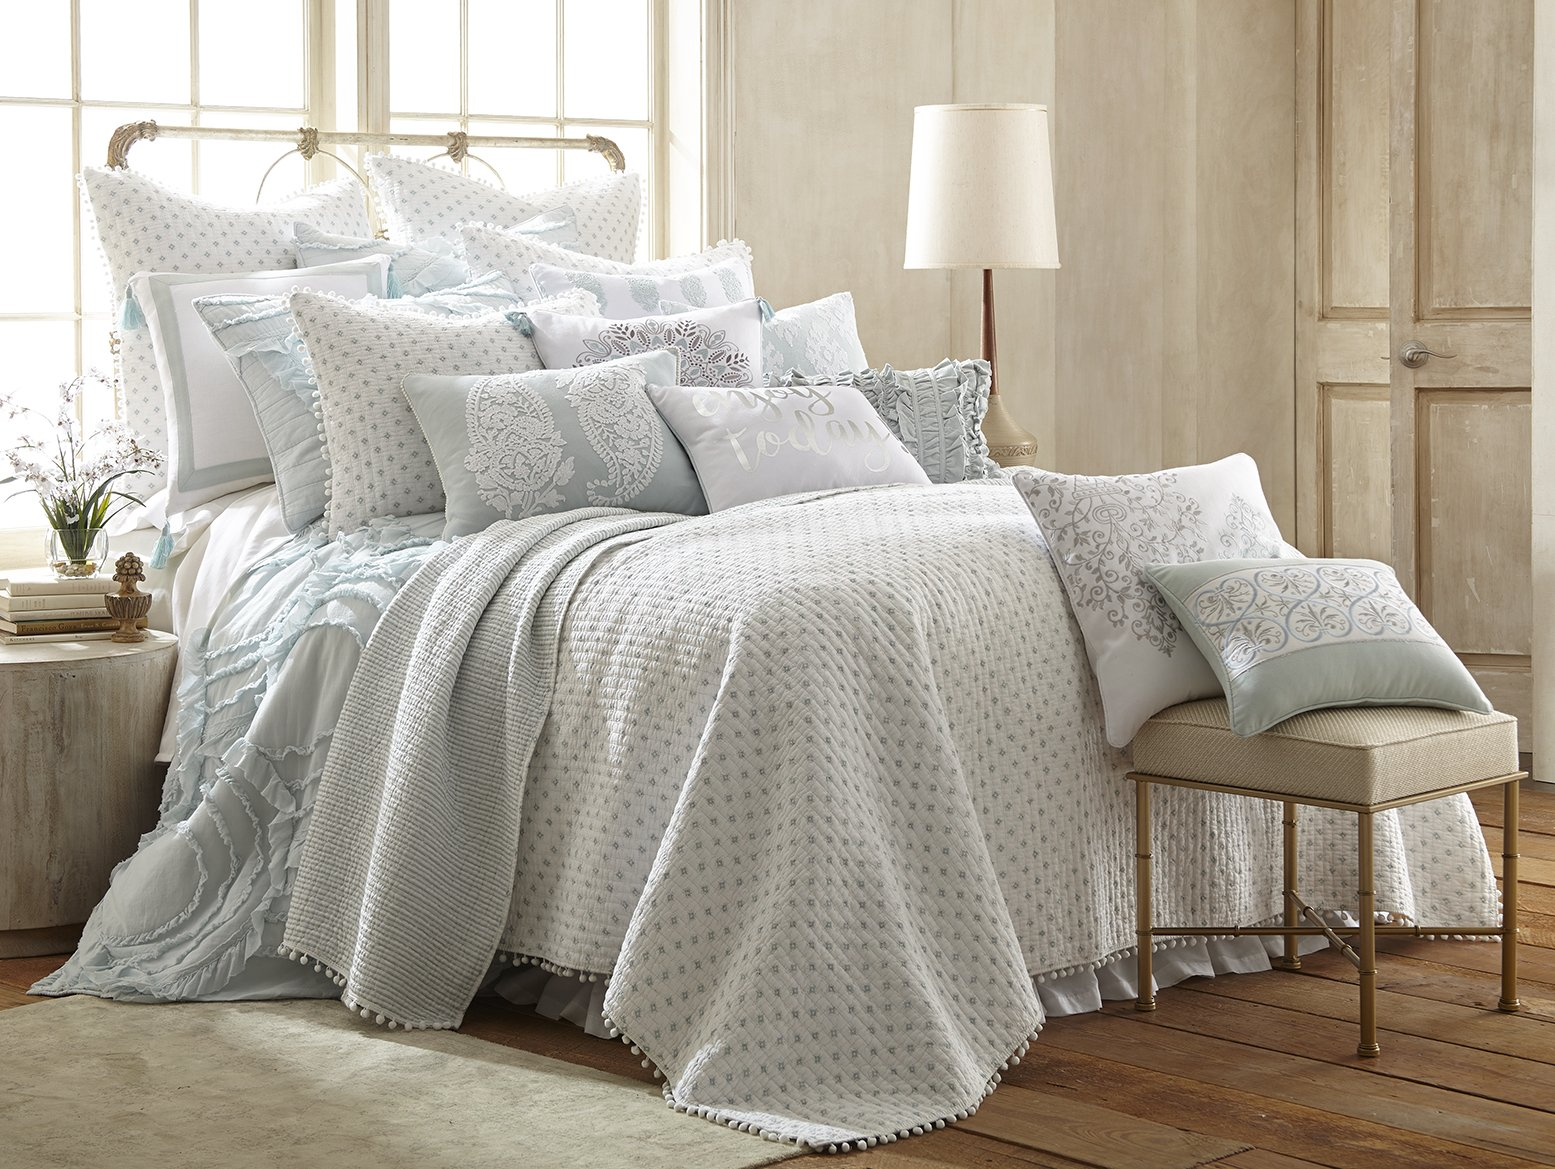 Layla Ditsy King Quilt Set, White/Spa, with Pom Poms